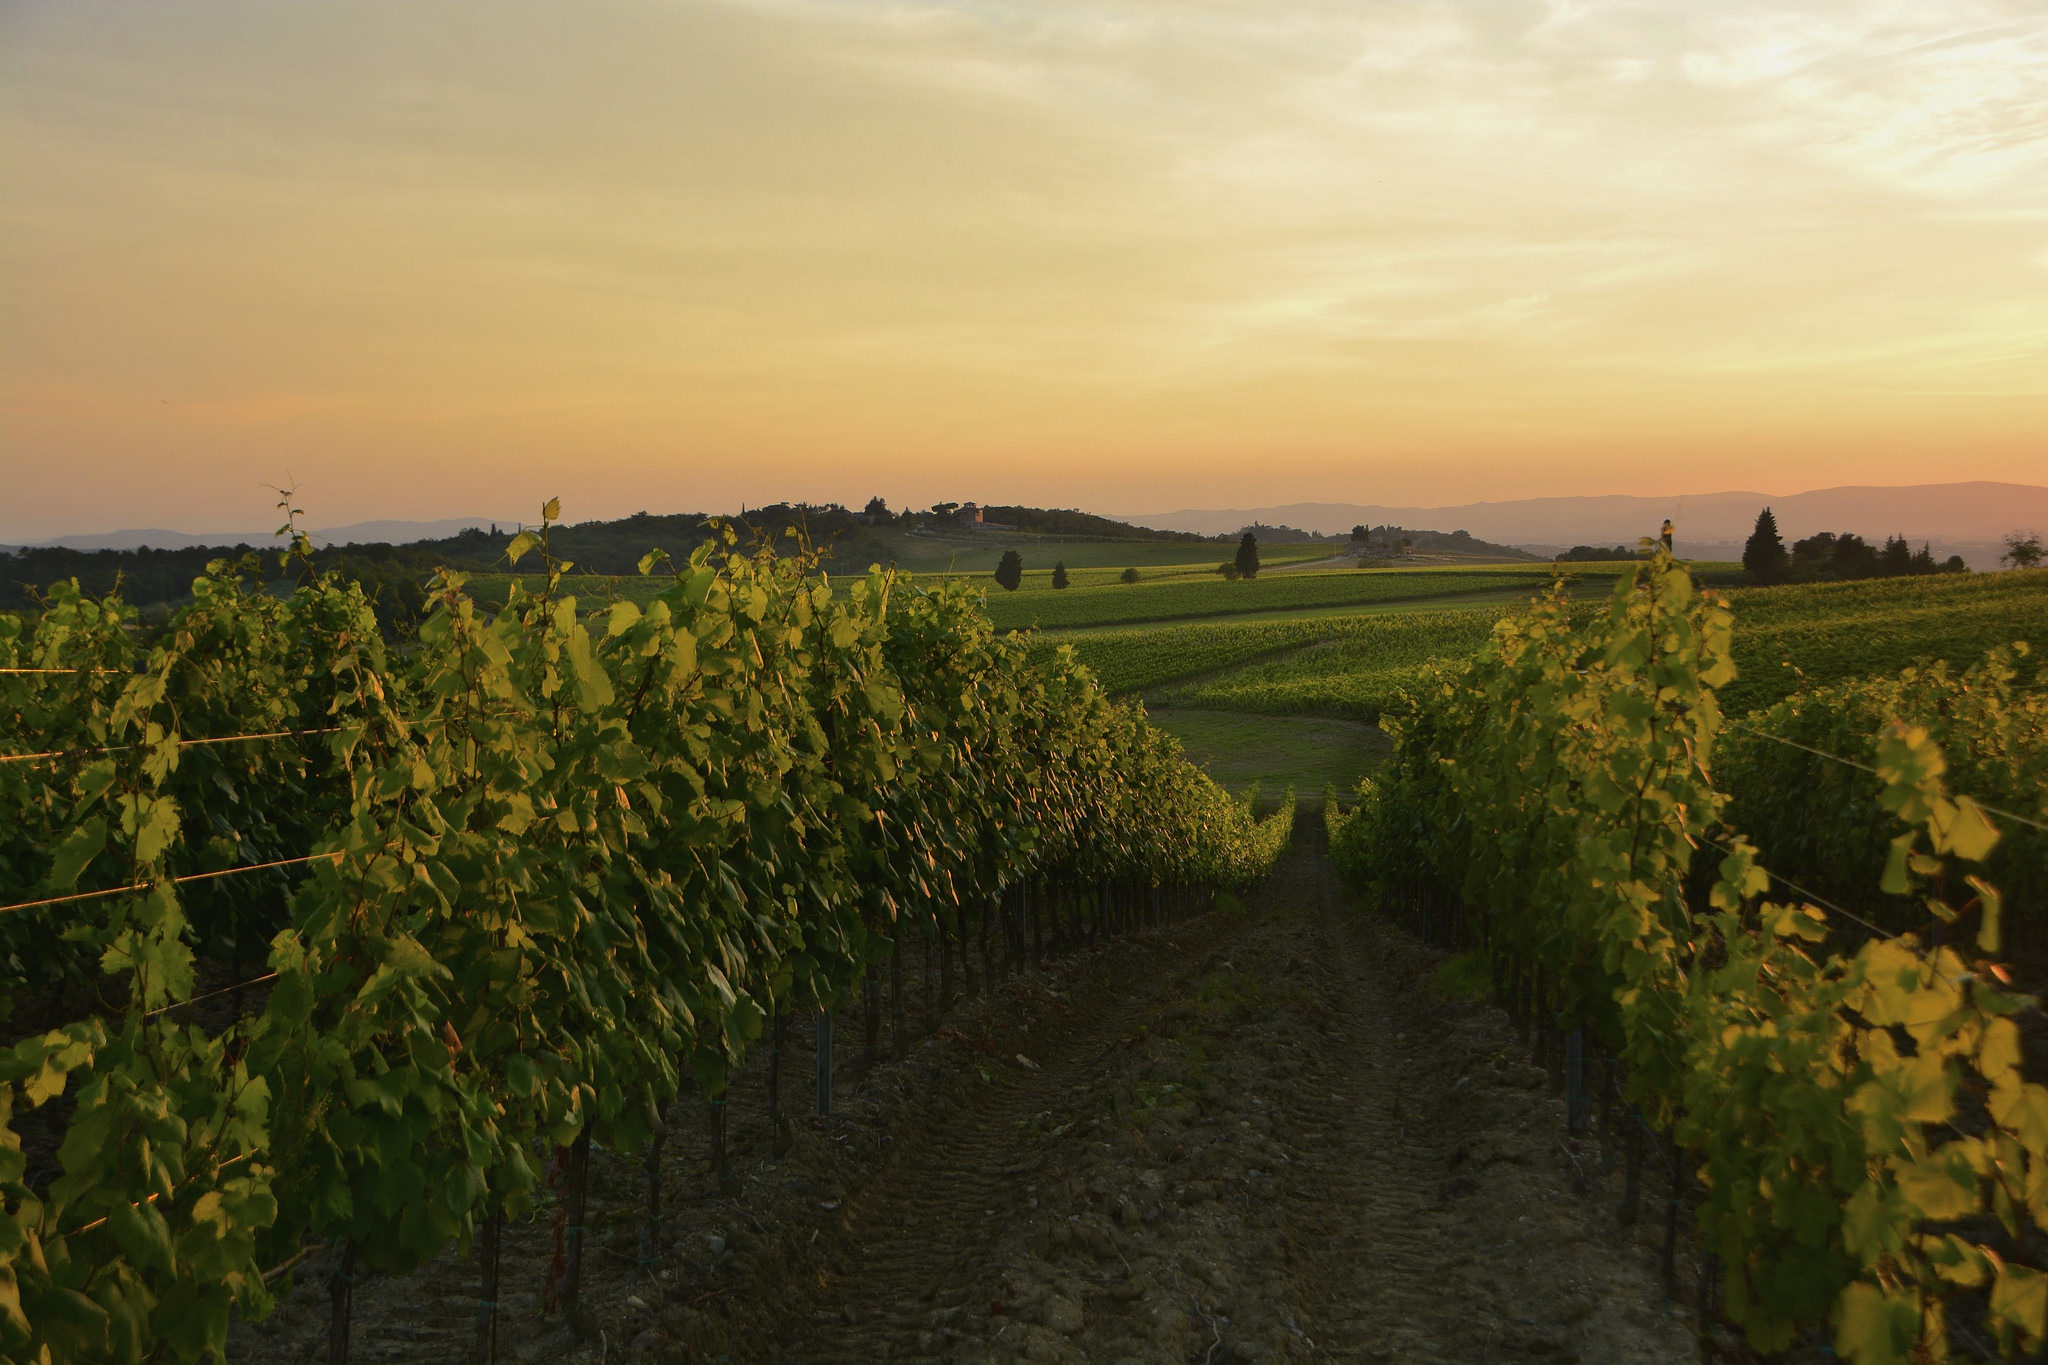 """Sunset in Chianti"" by Antonio Cinotti via Flickr Creative Commons"